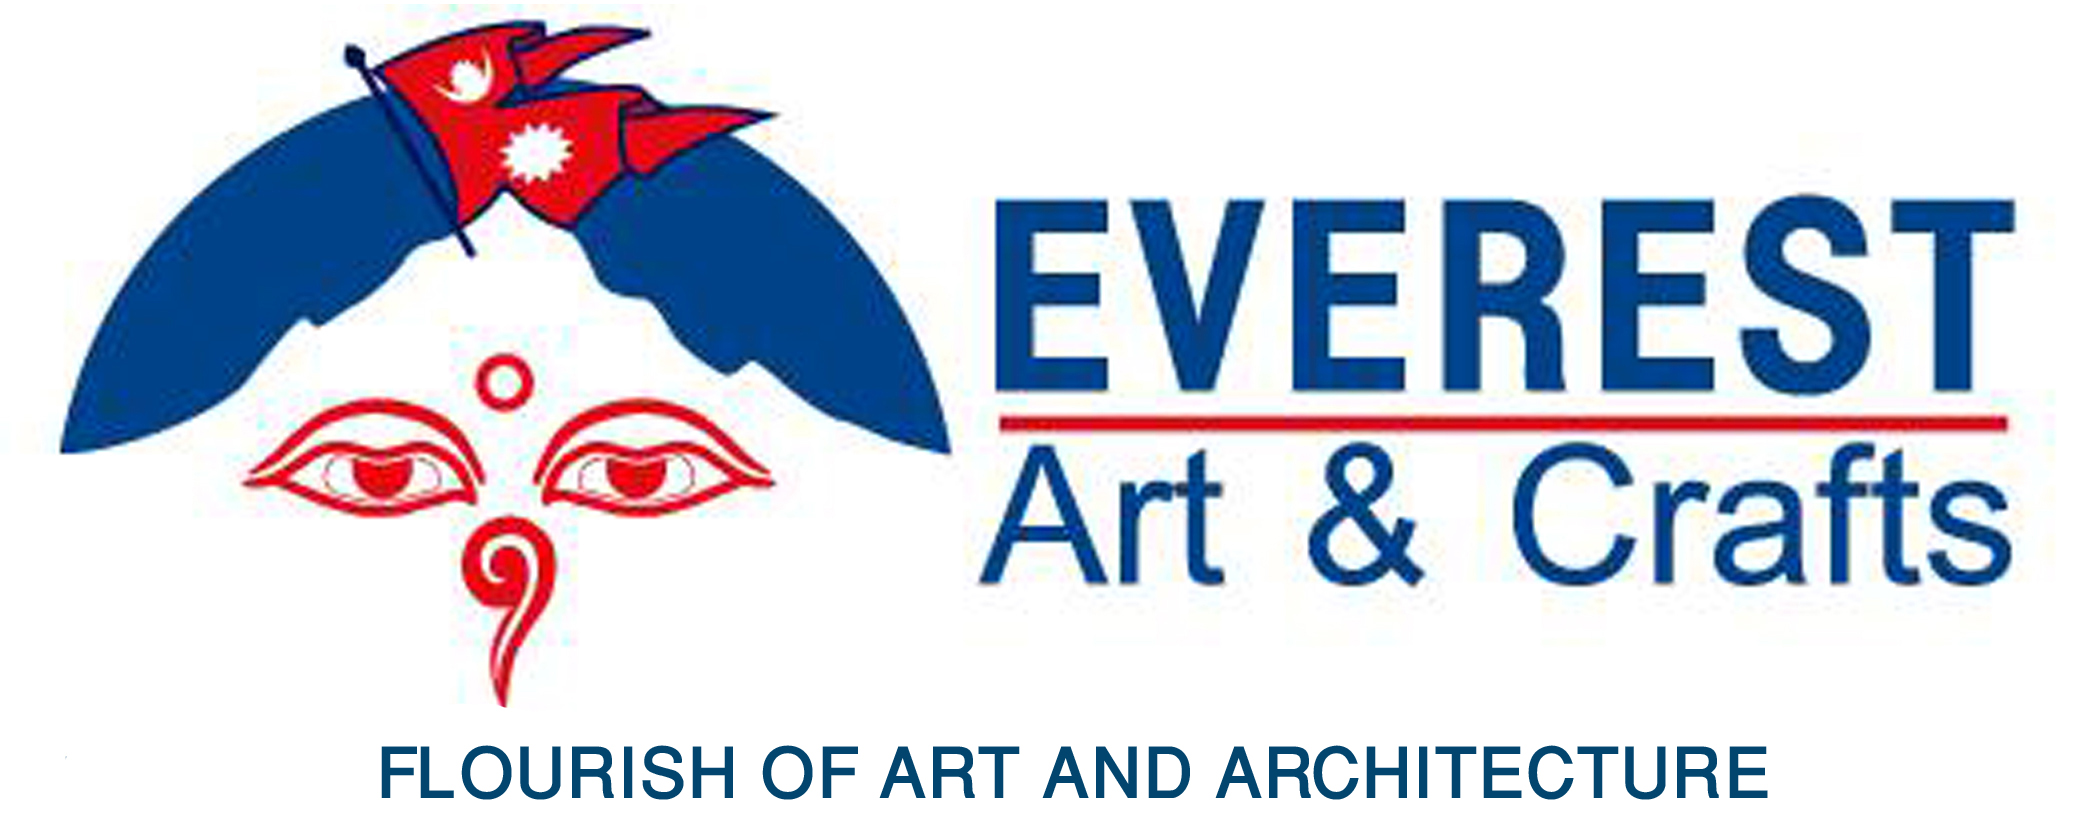 Everest Art and Crafts